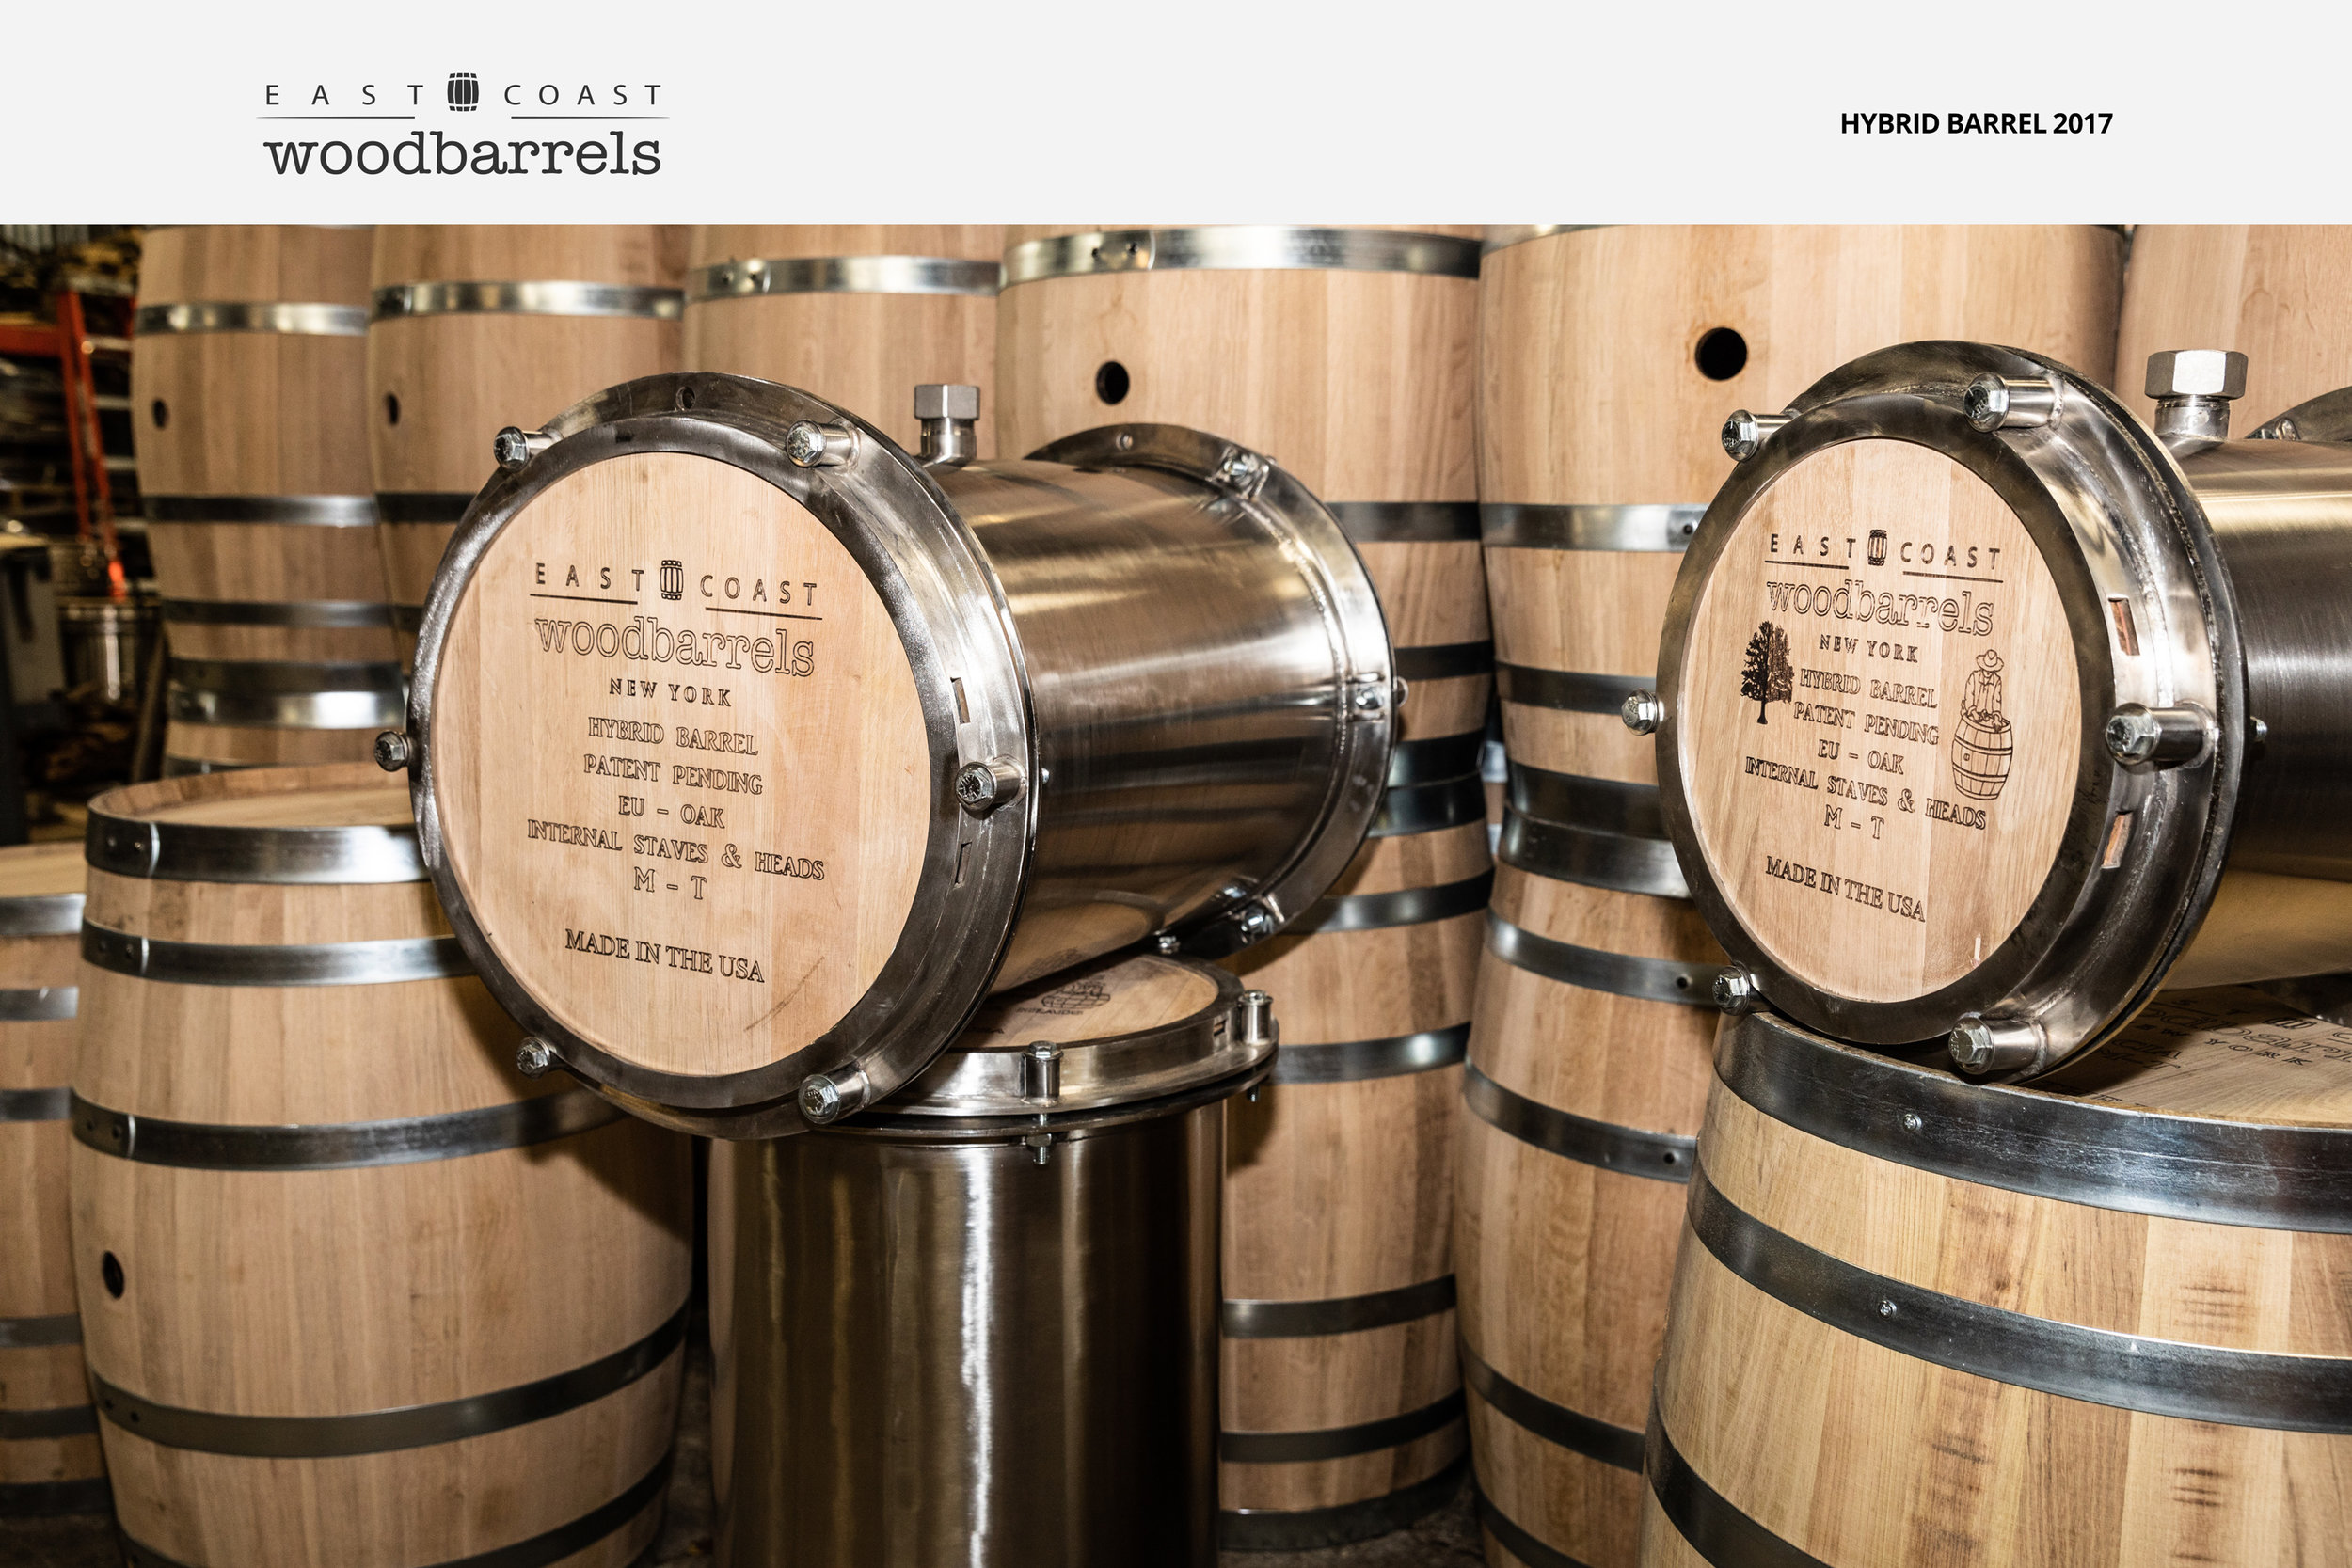 EAST-COAST-WOOD-BARRELS-WEB-IMAGES-4.jpg